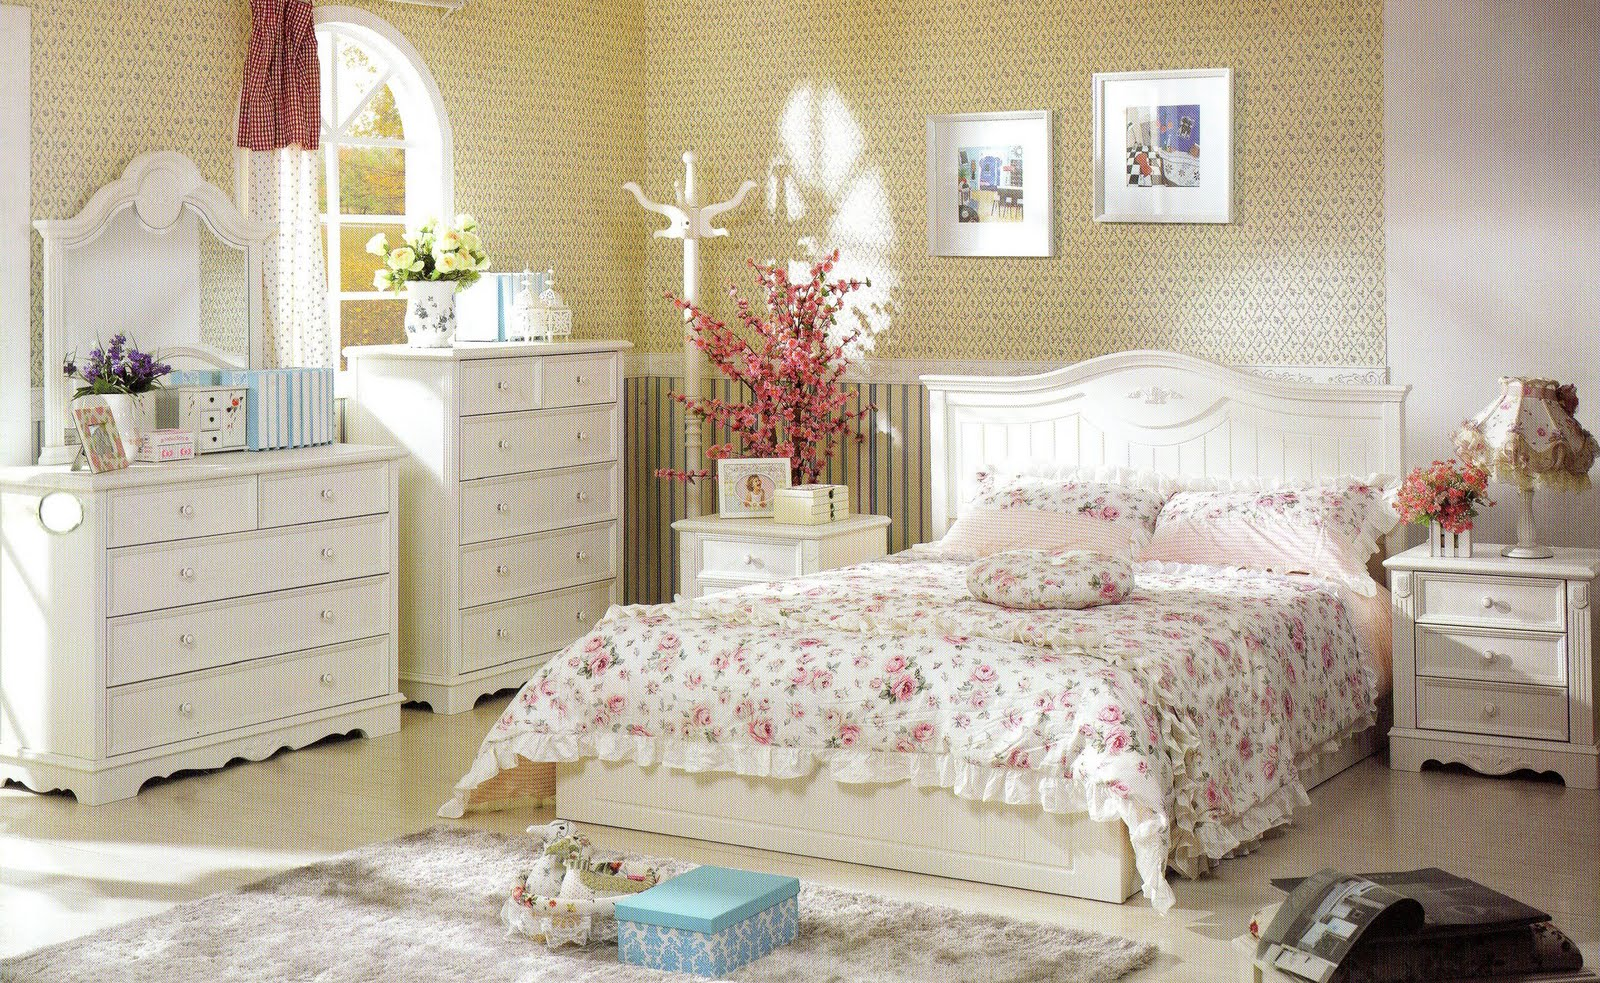 Country style bedrooms sweet doll house for Bedroom ideas country